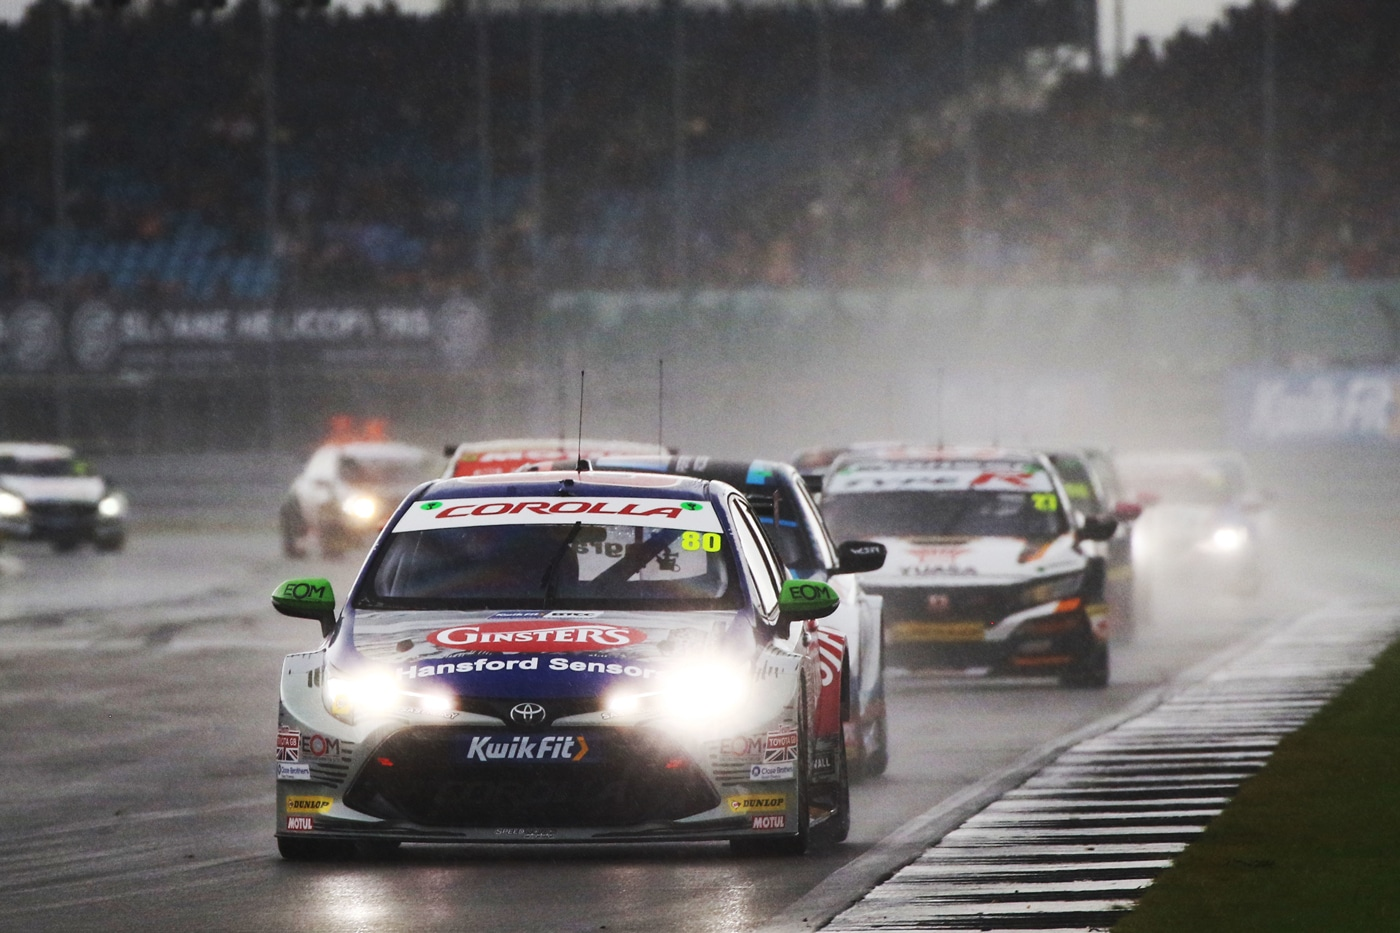 Ingram with his headlights on in front of competitors on the very wet track with low visibility